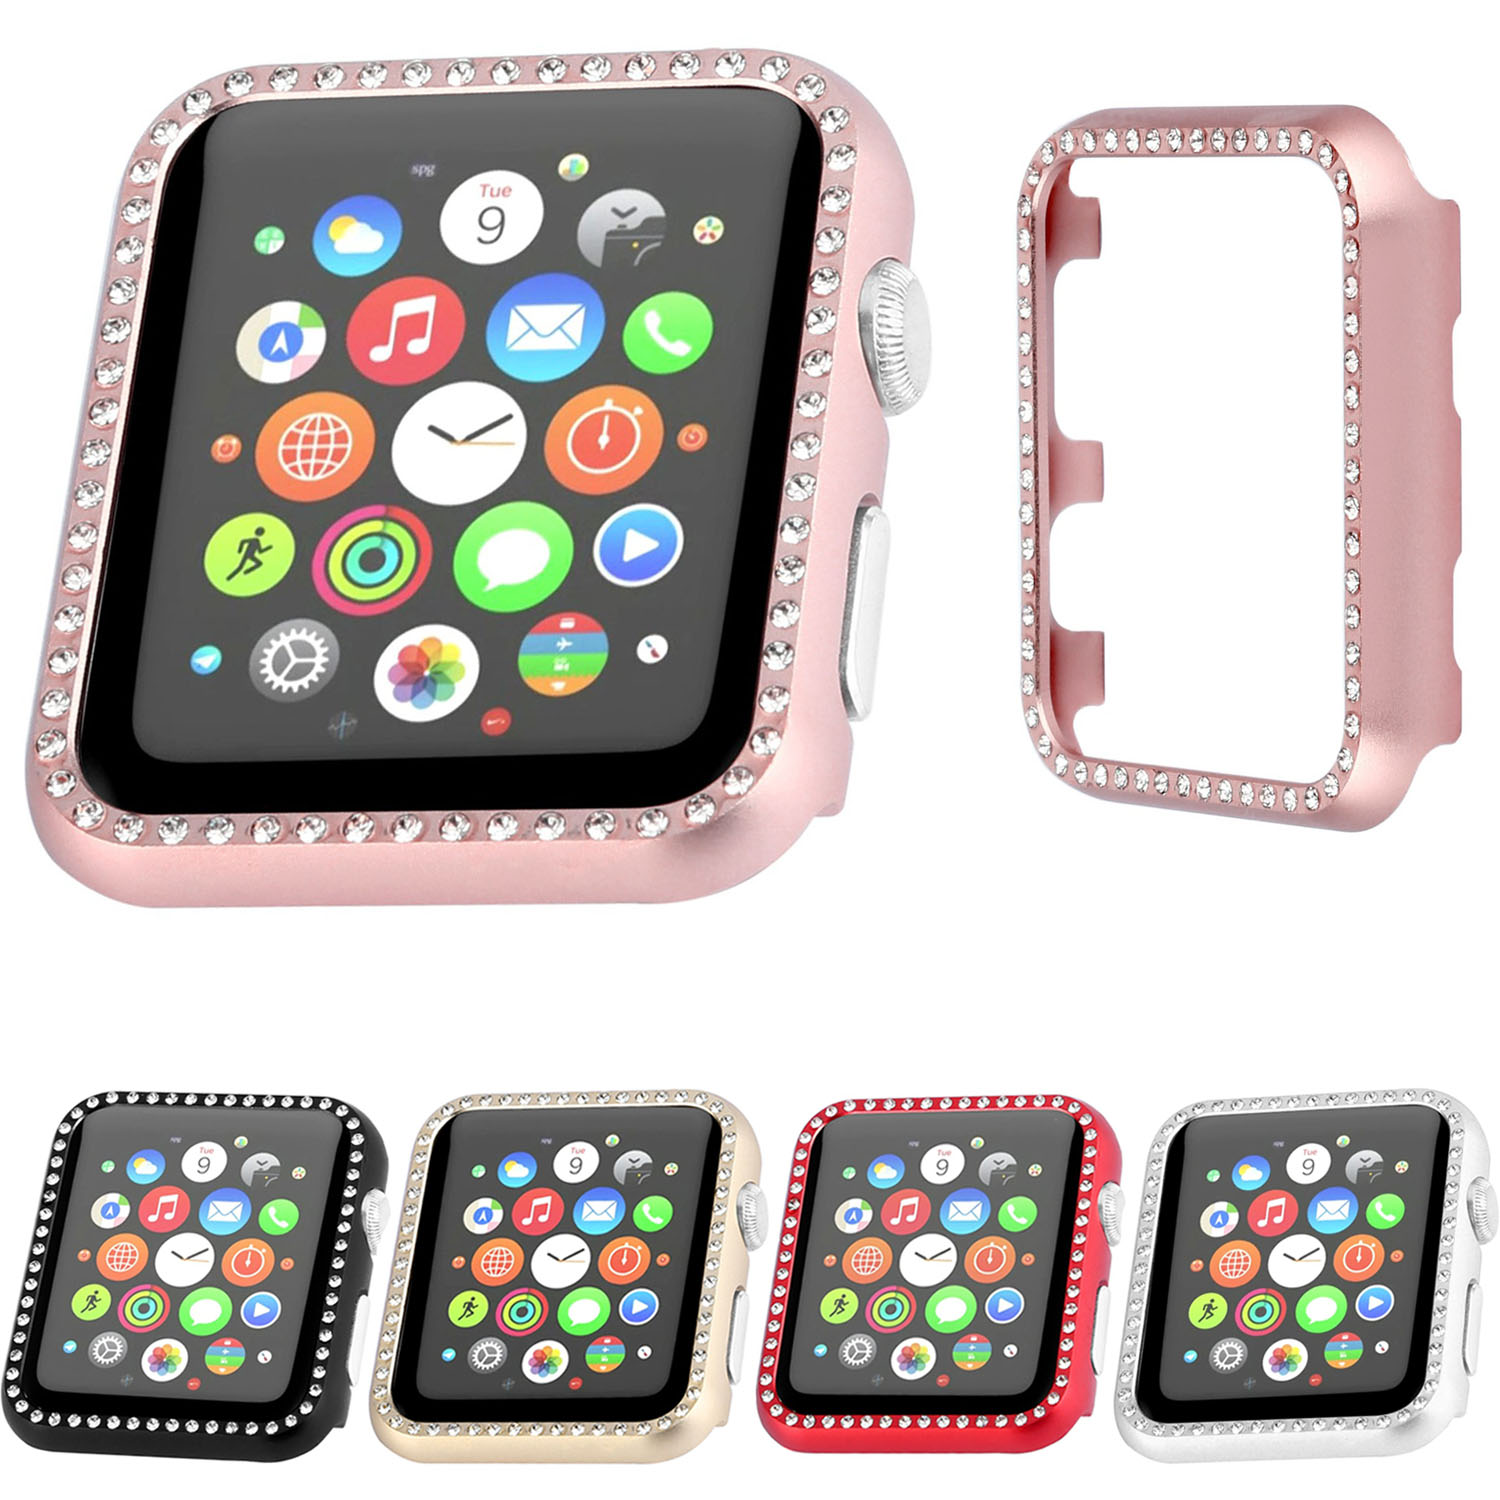 brand new 0c5ad 6d472 US $7.5 25% OFF|5 Colors Luxury Bling Crystal Metal Cover for Apple Watch  Case Diamond Watch Cover for iWatch Series 3 2 1 Case 42mm 38mm Band-in ...